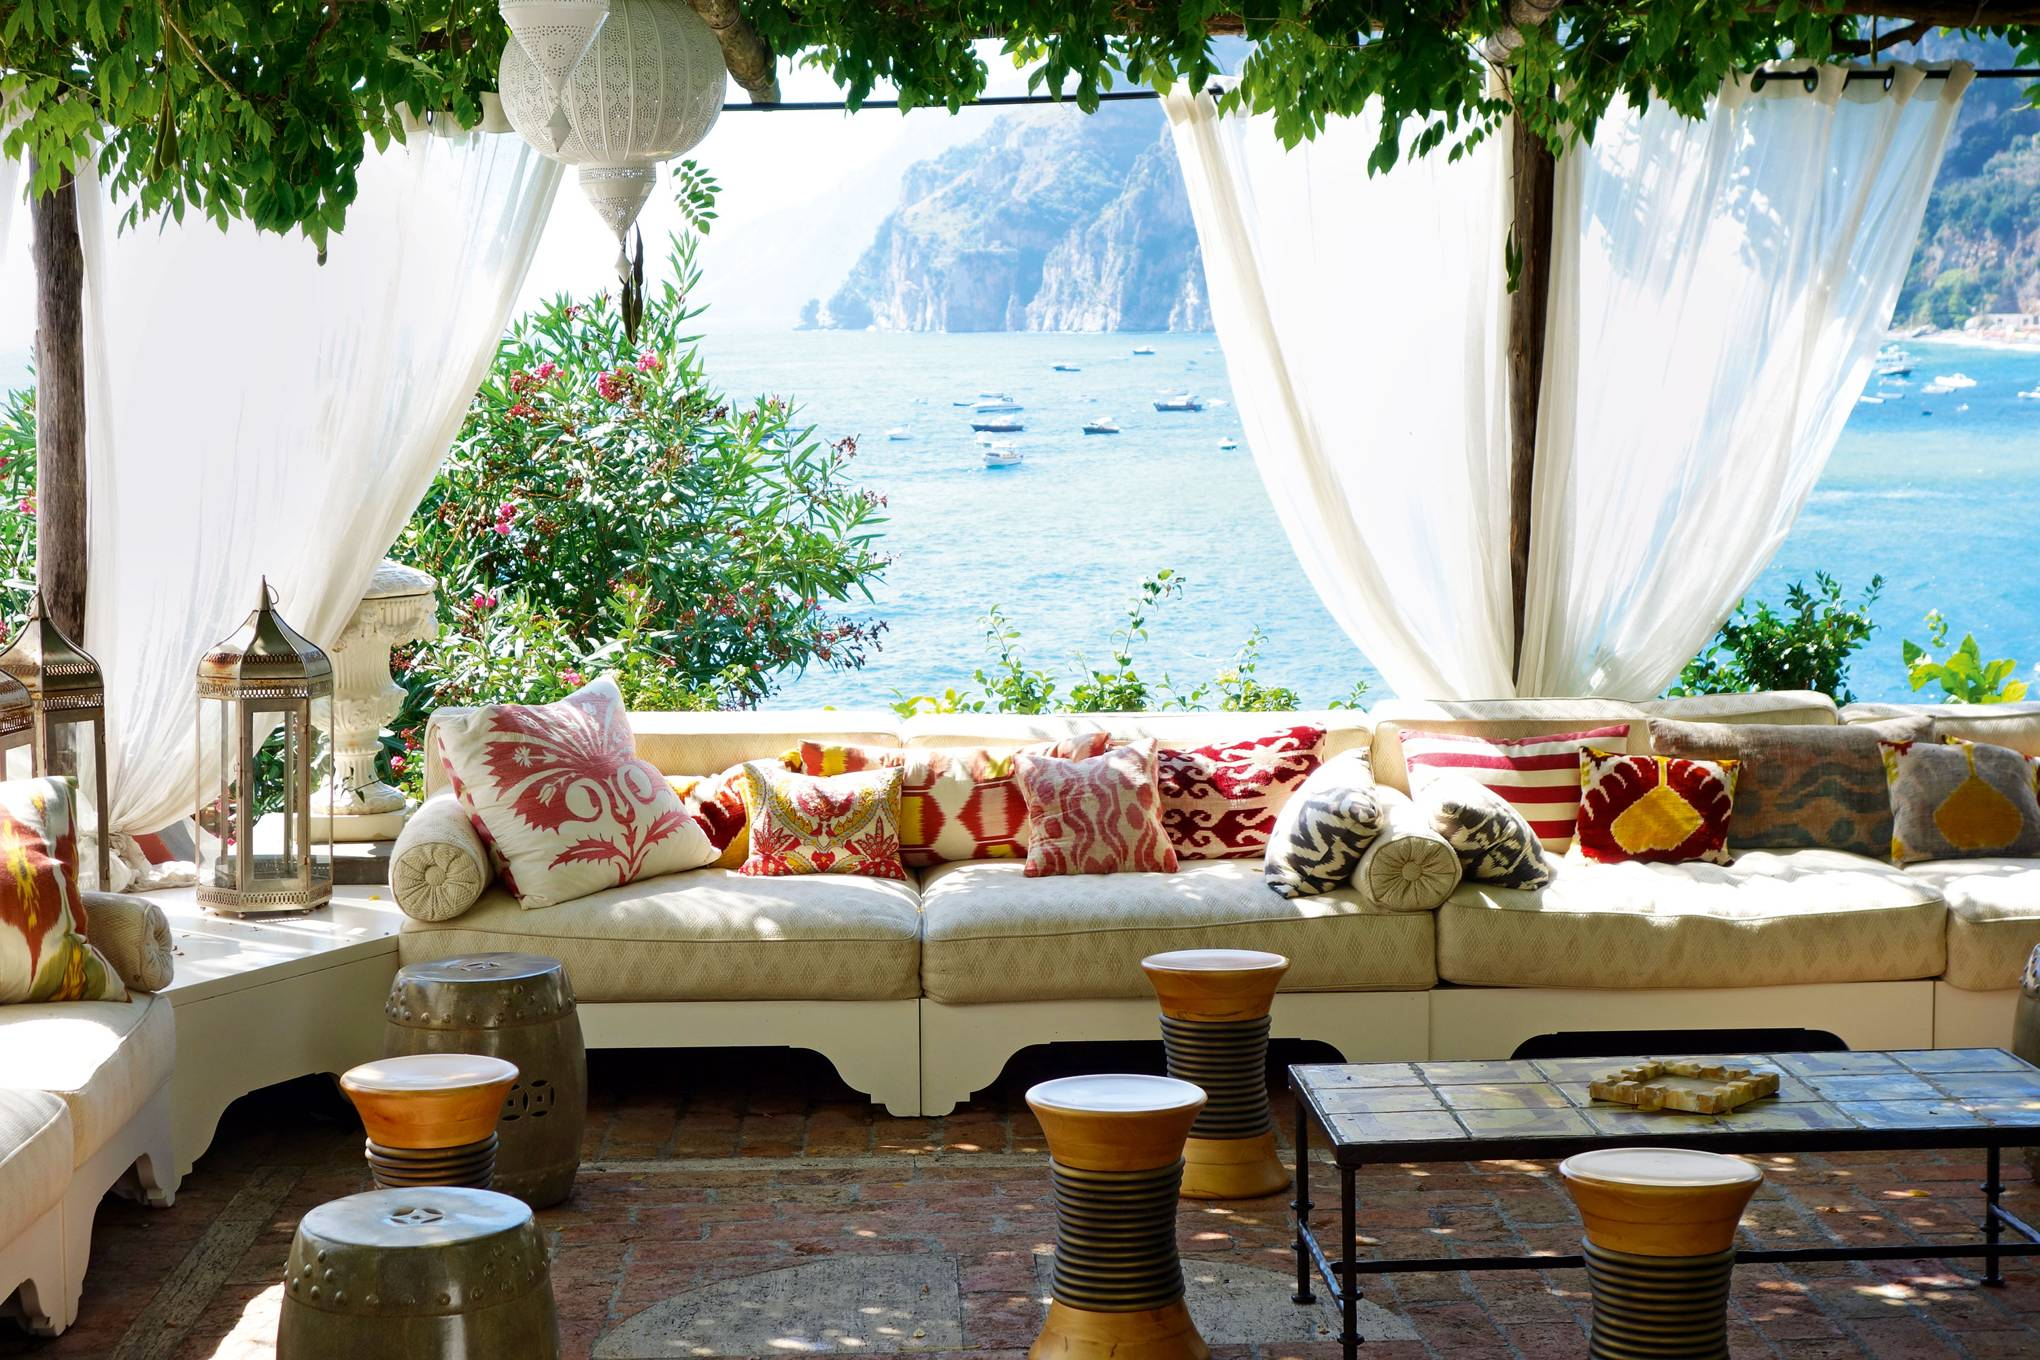 Hotel rooms with amazing views | CN Traveller